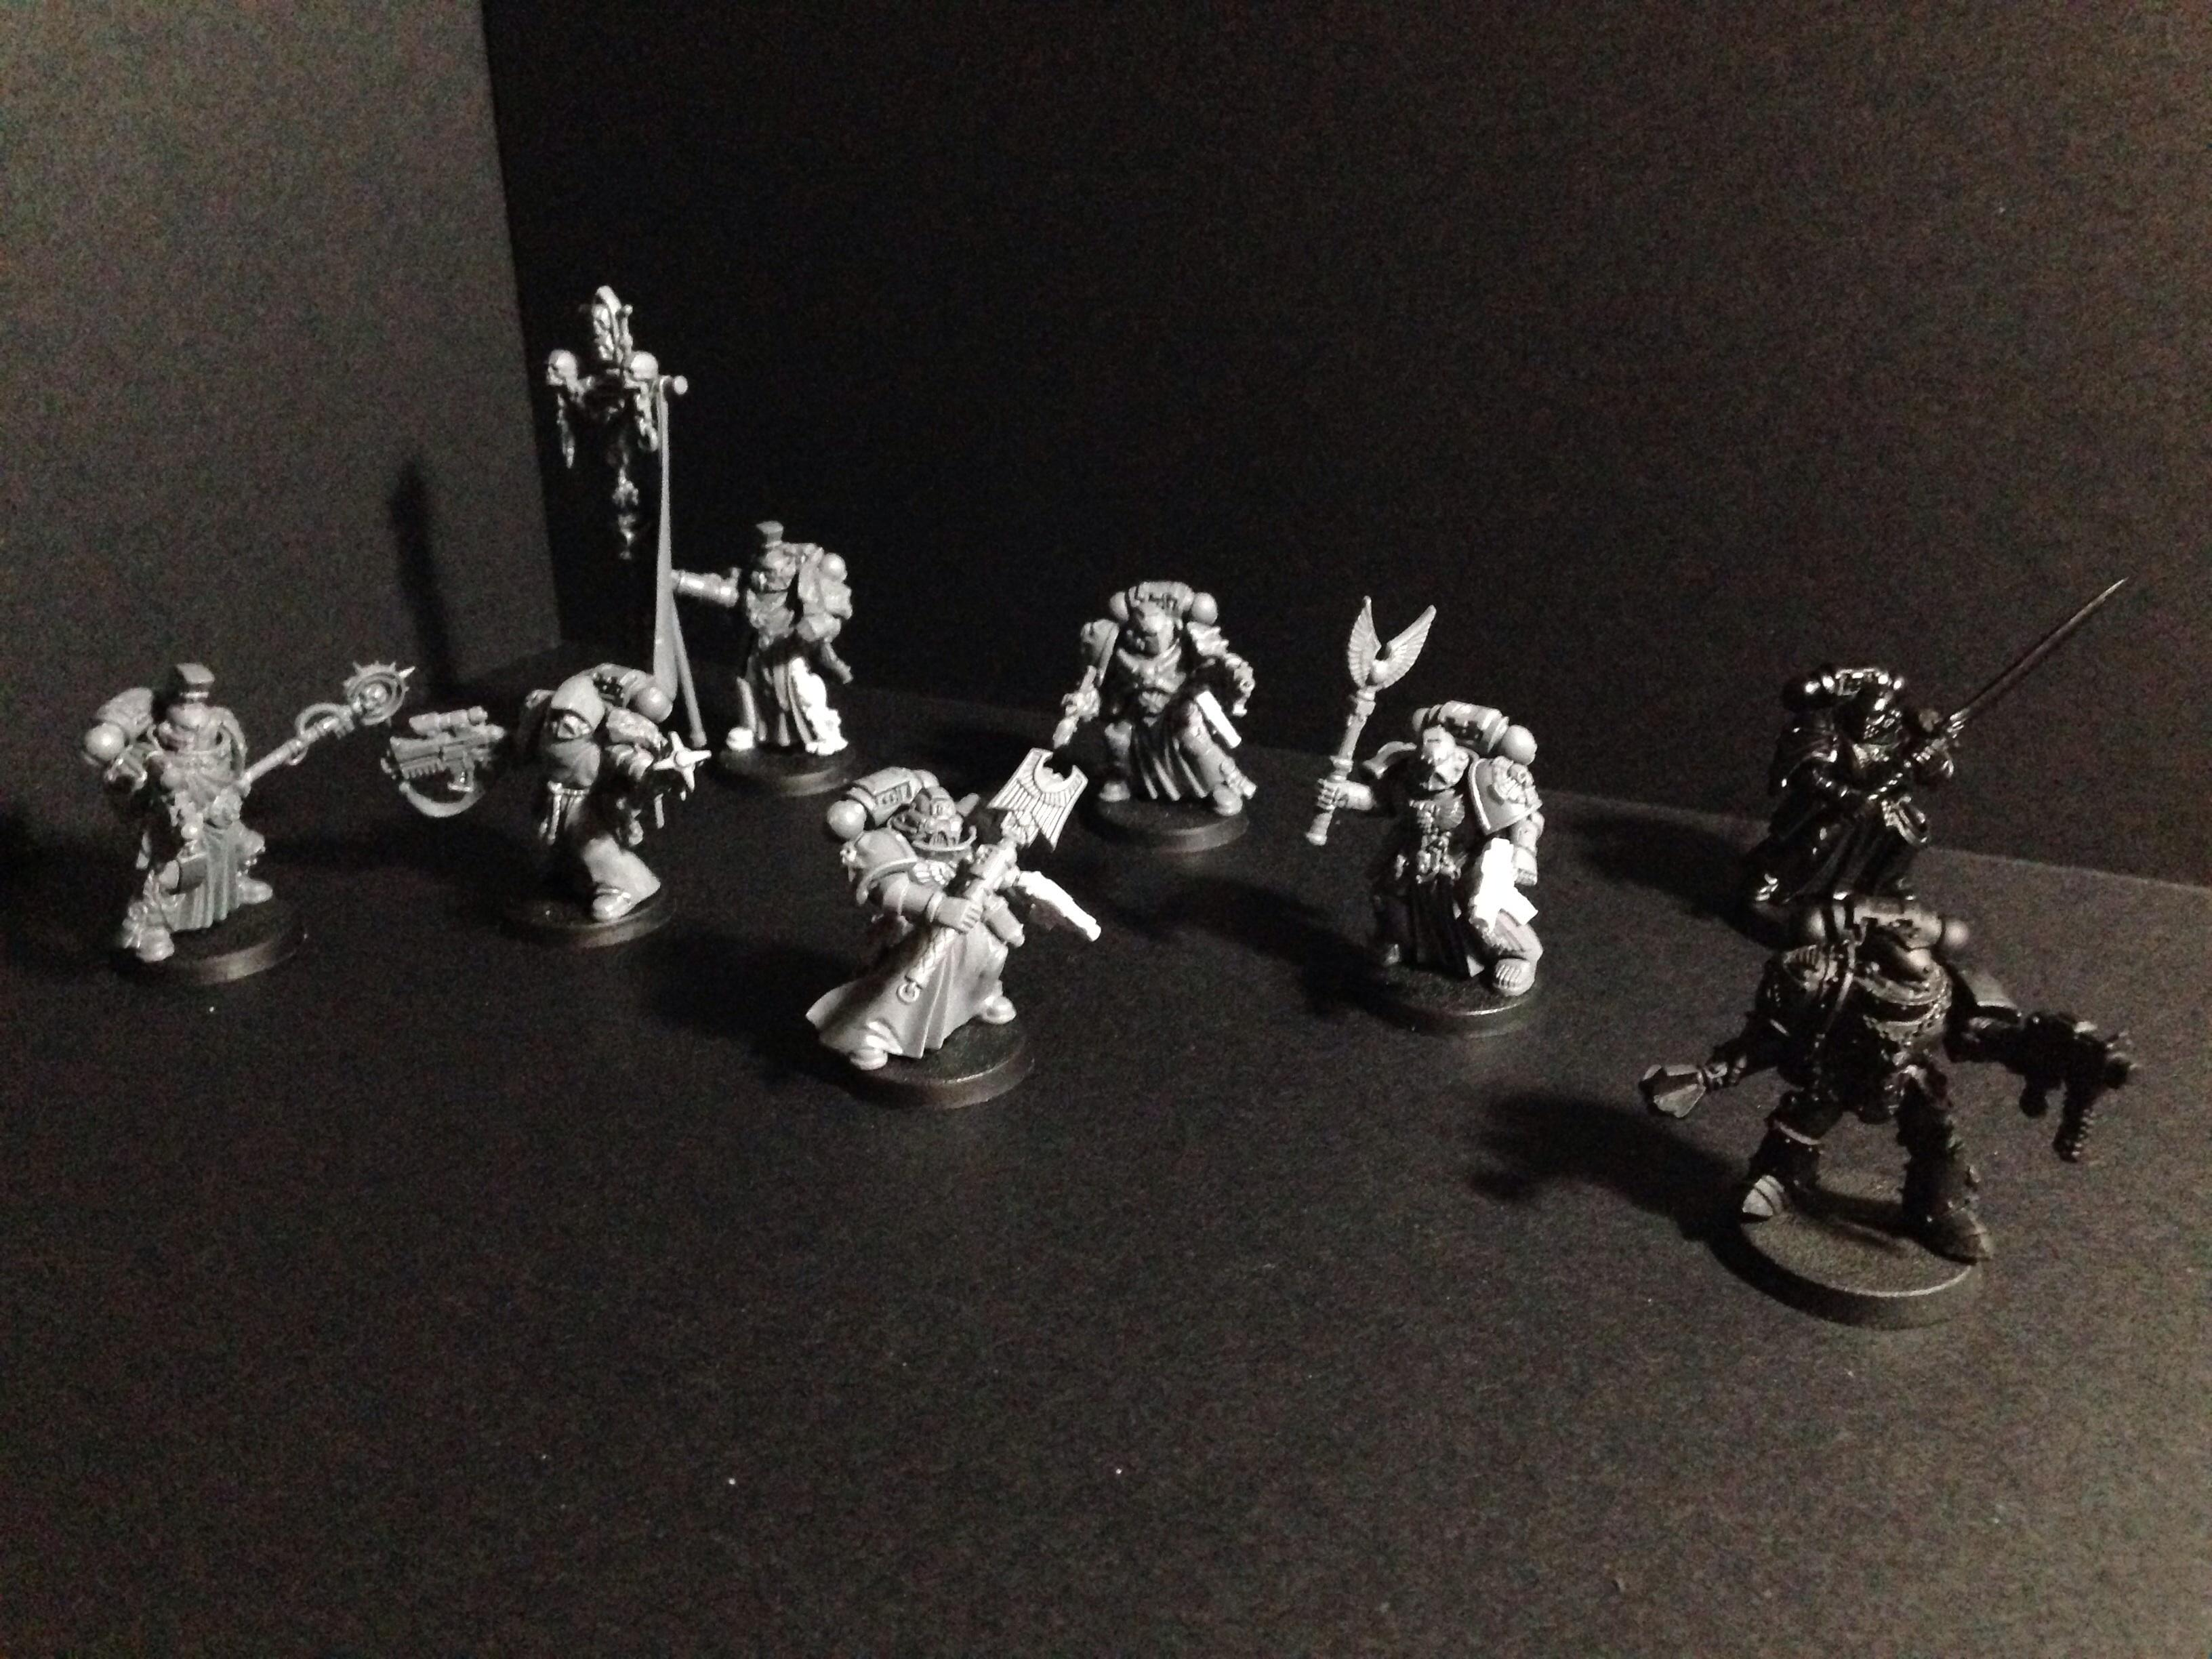 Adeptus Astartes, Black Templars, Honor Guard, Space Marines